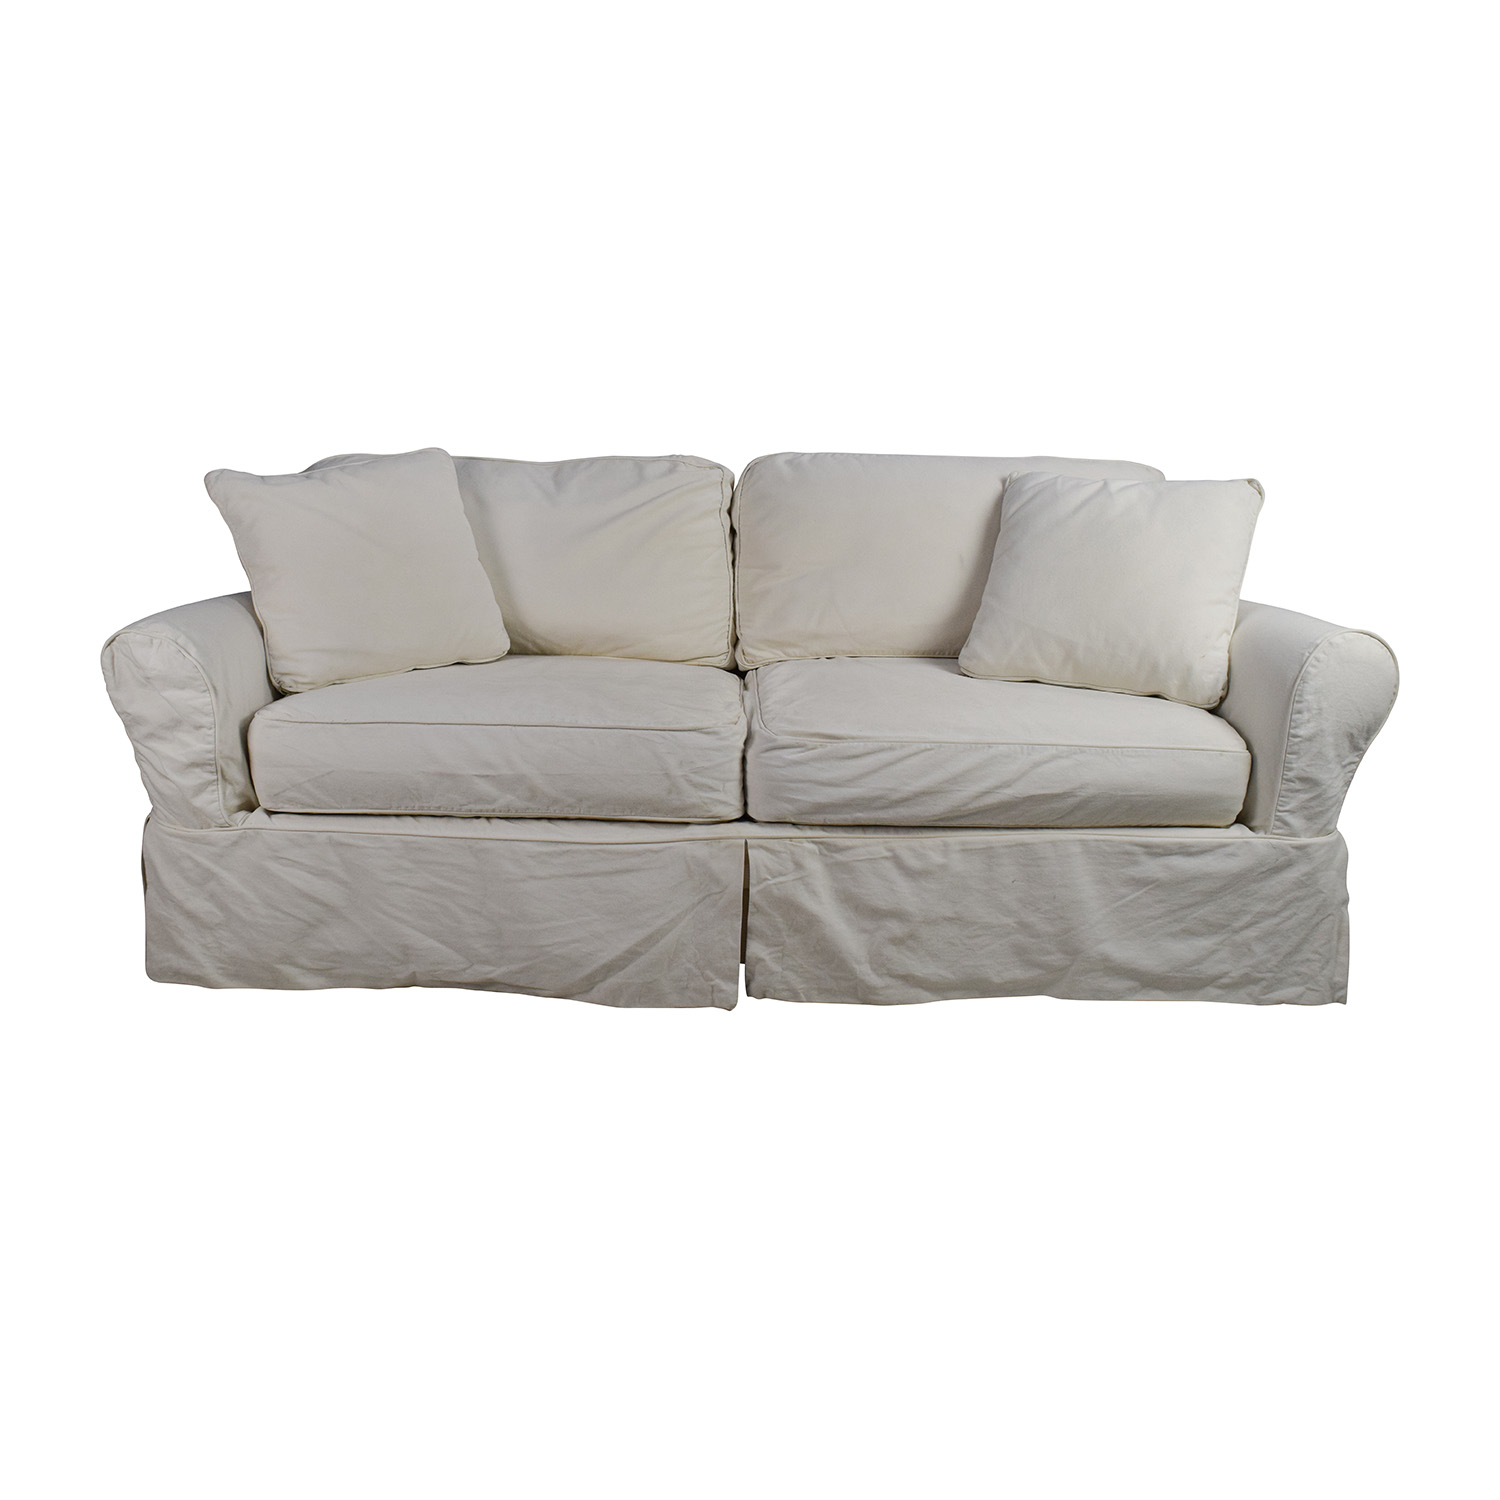 87 Off Raymour Flanigan Raymour Flanigan Lakeside Sofa Sofas